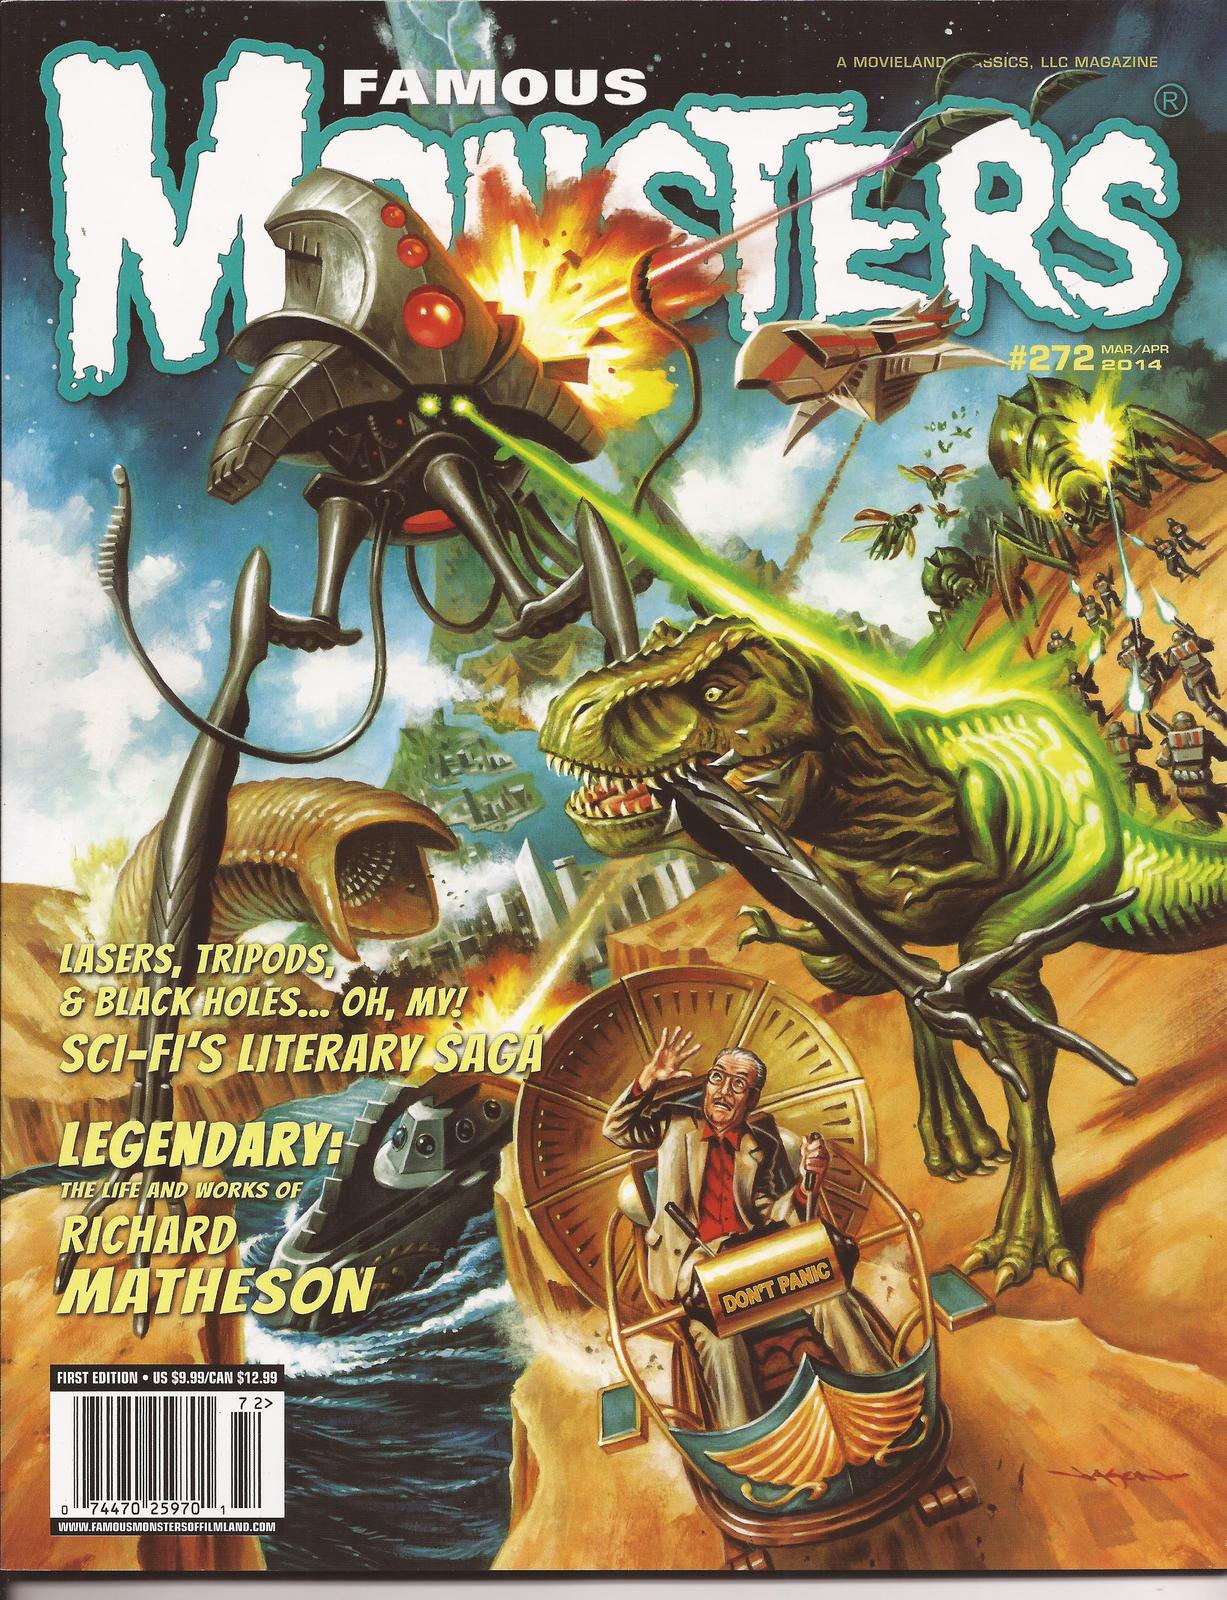 Primary image for Famous Monsters Of Filmland #272 Richard Matheson Tribute Sci-Fi Literature